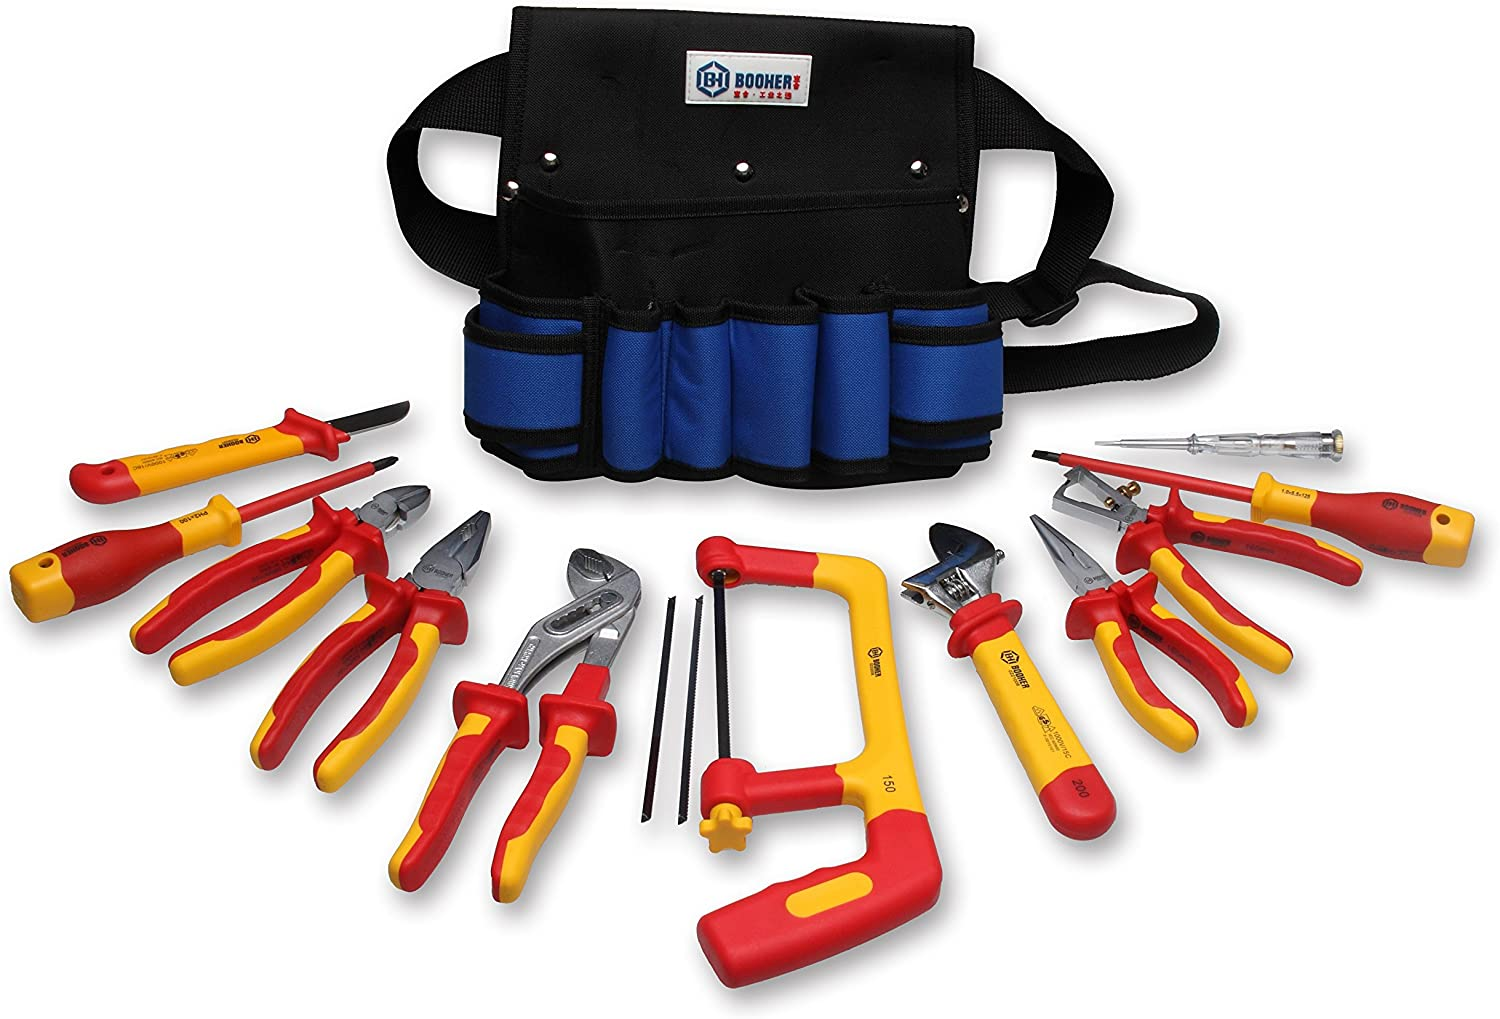 BOOHER 0200104 13-Piece 1000V Insulated Electricians Tools Set